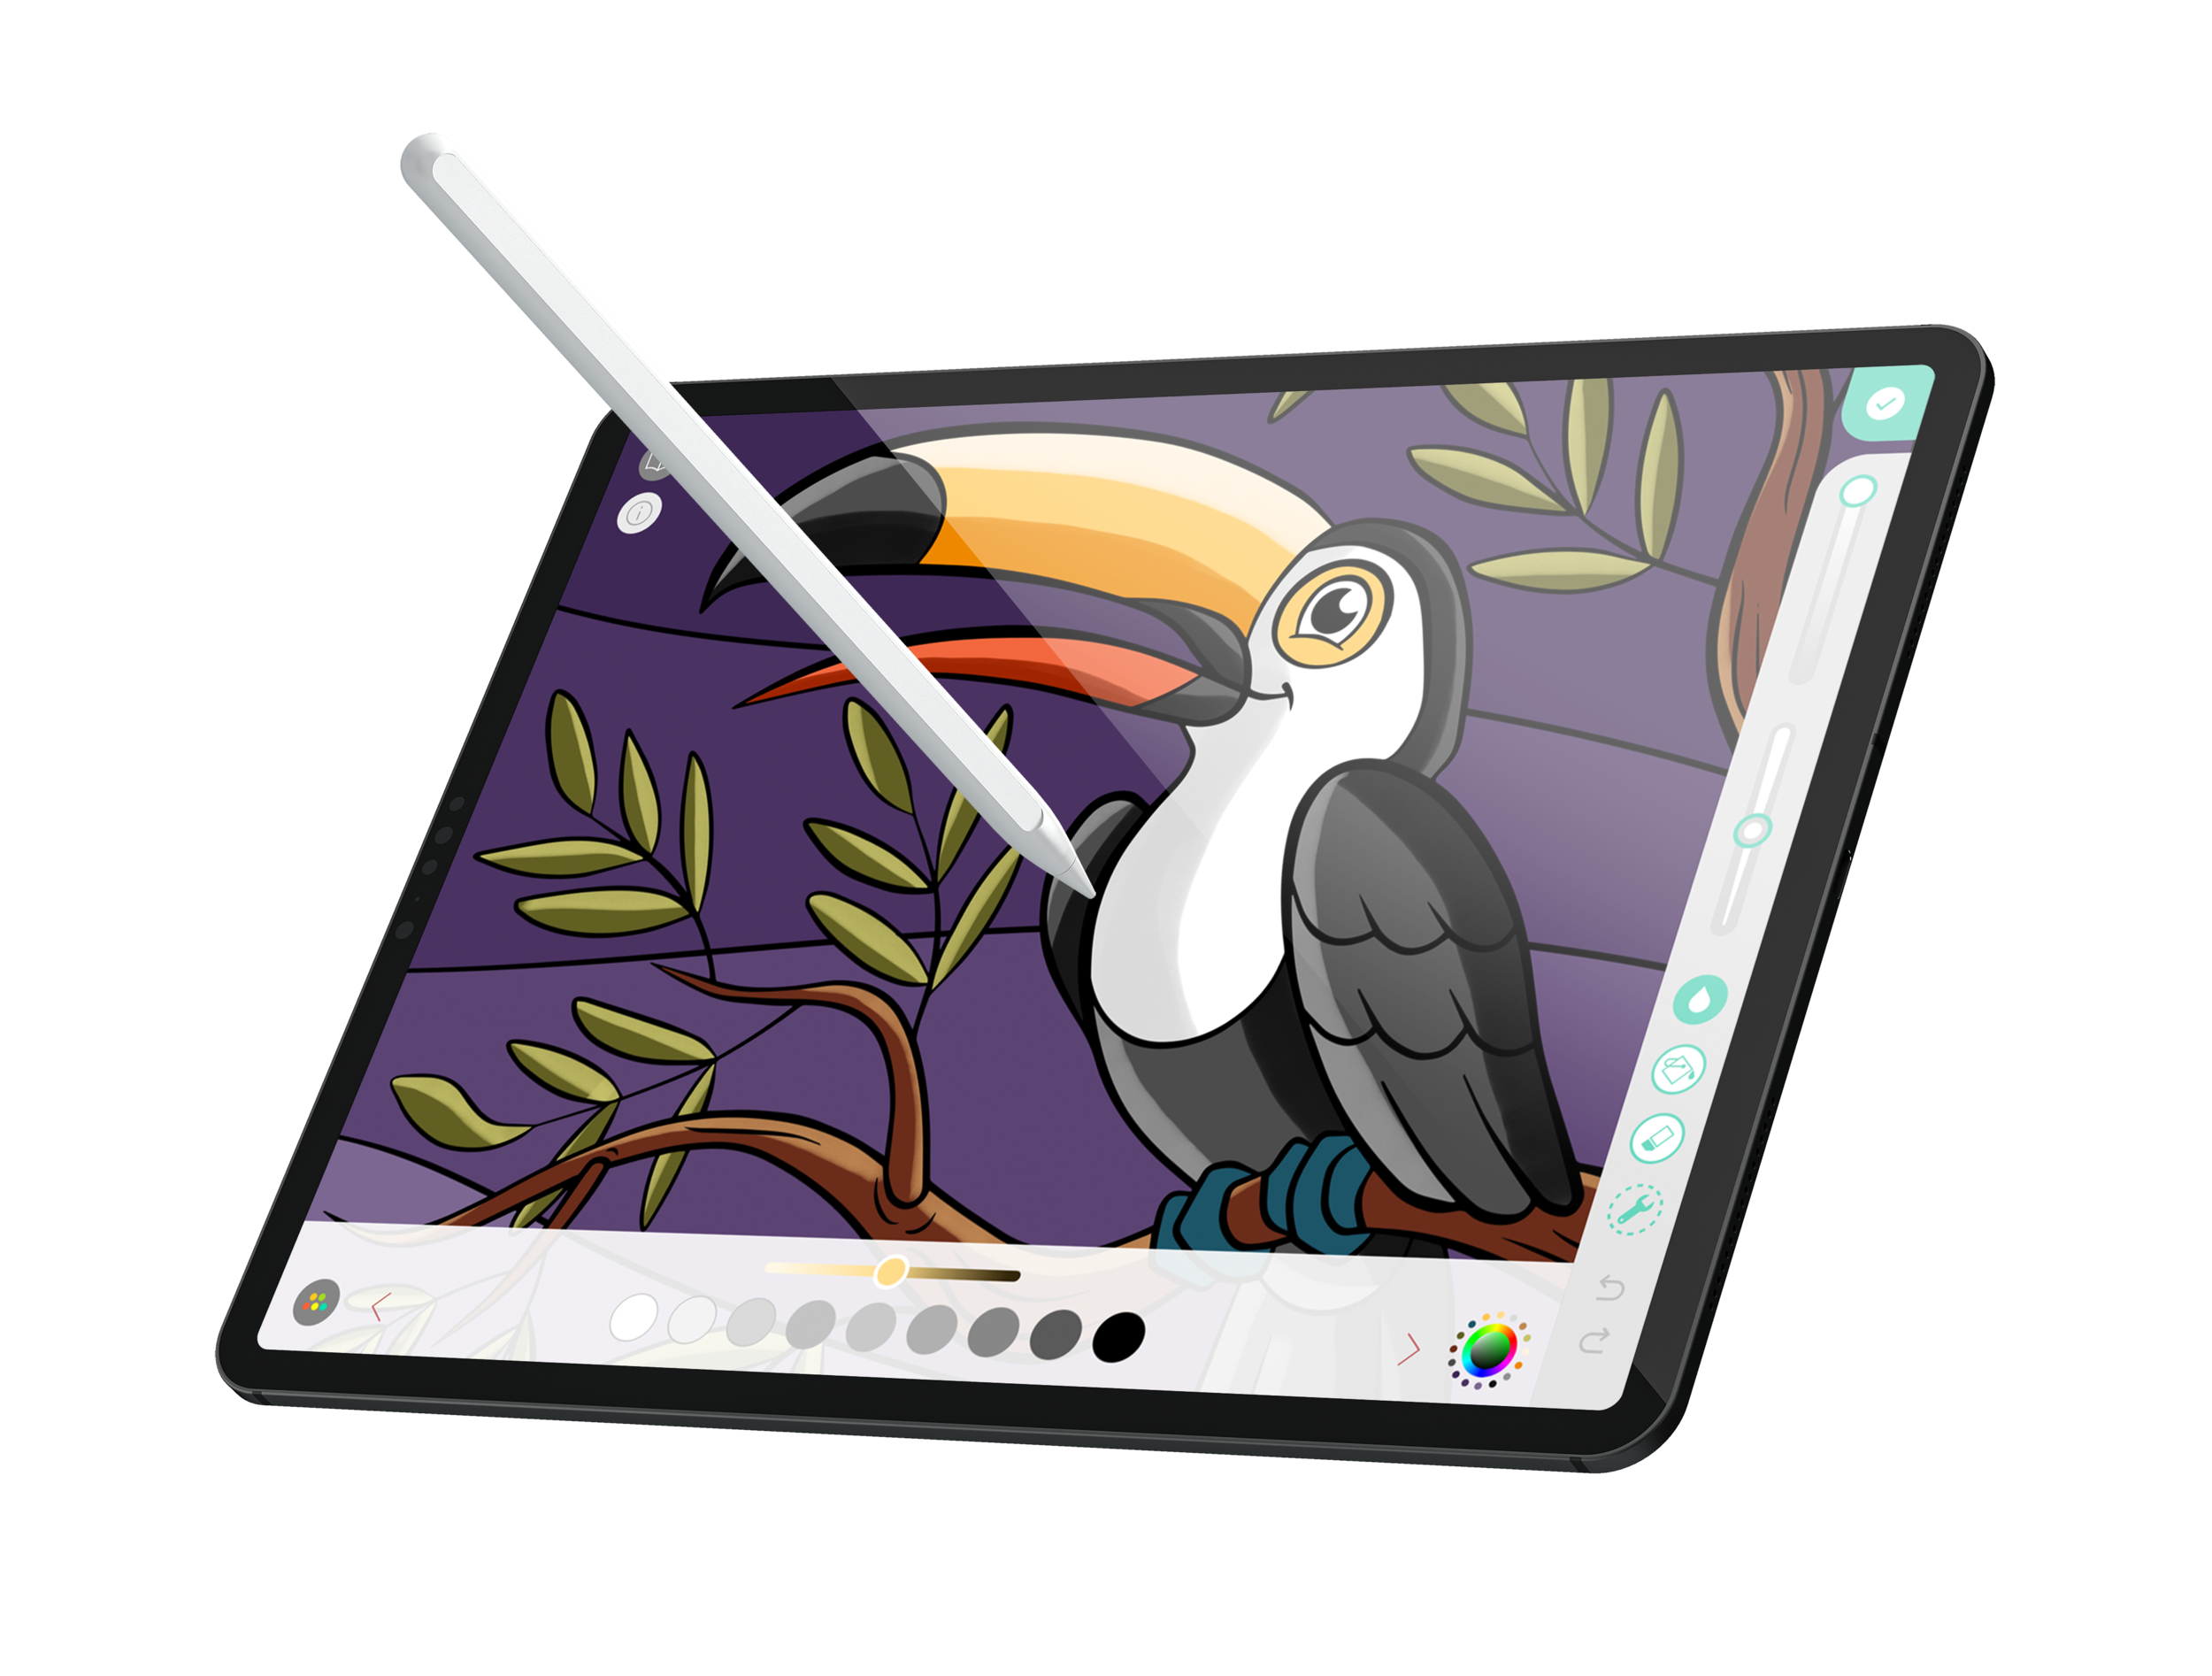 Apple Pencil Support - • Use an Apple Pencil, or virtually any other stylus.• An immersive and realistic coloring experience.• Easy pressure, direction, and stroke adjustments.• Leave that box of pencils and erasers in the closet!